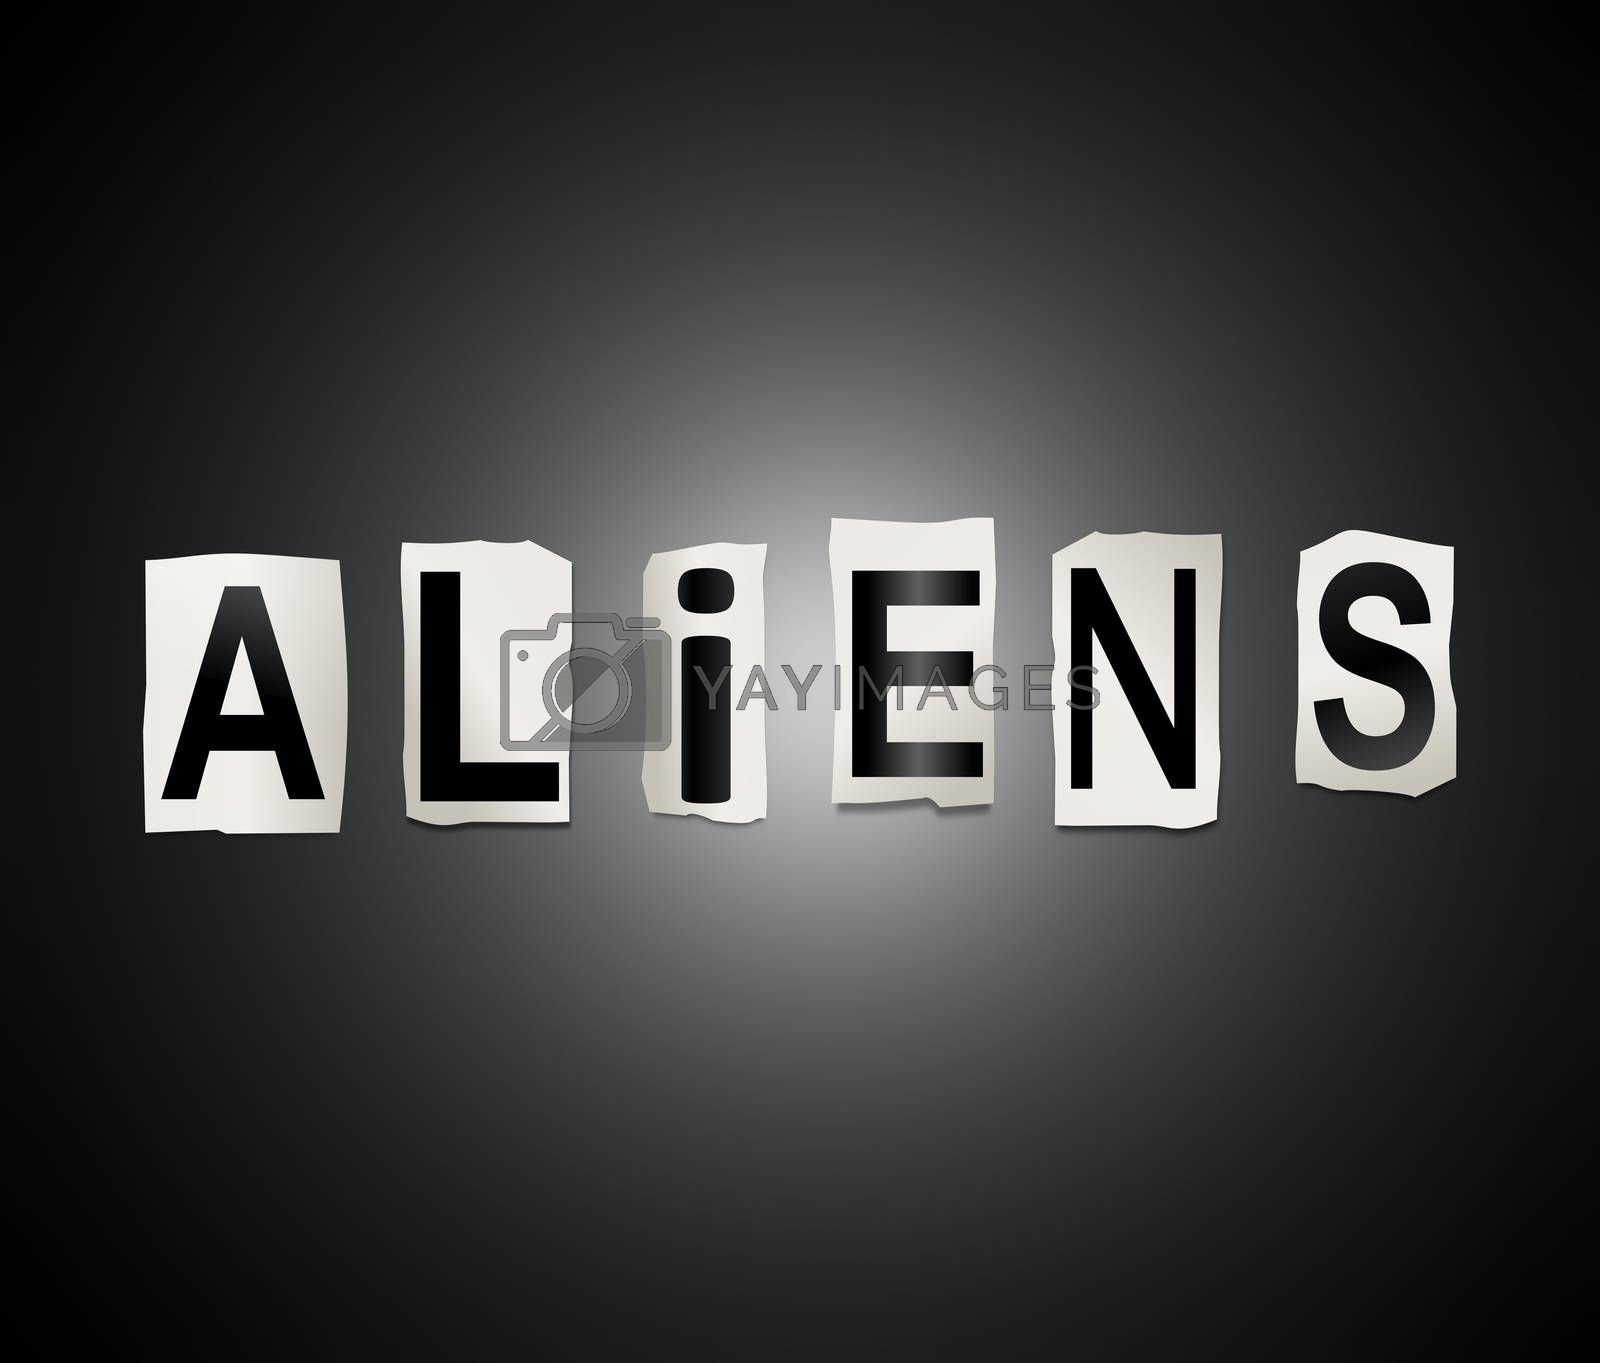 Illustration depicting a set of cut out printed letters arranged to form the word aliens.